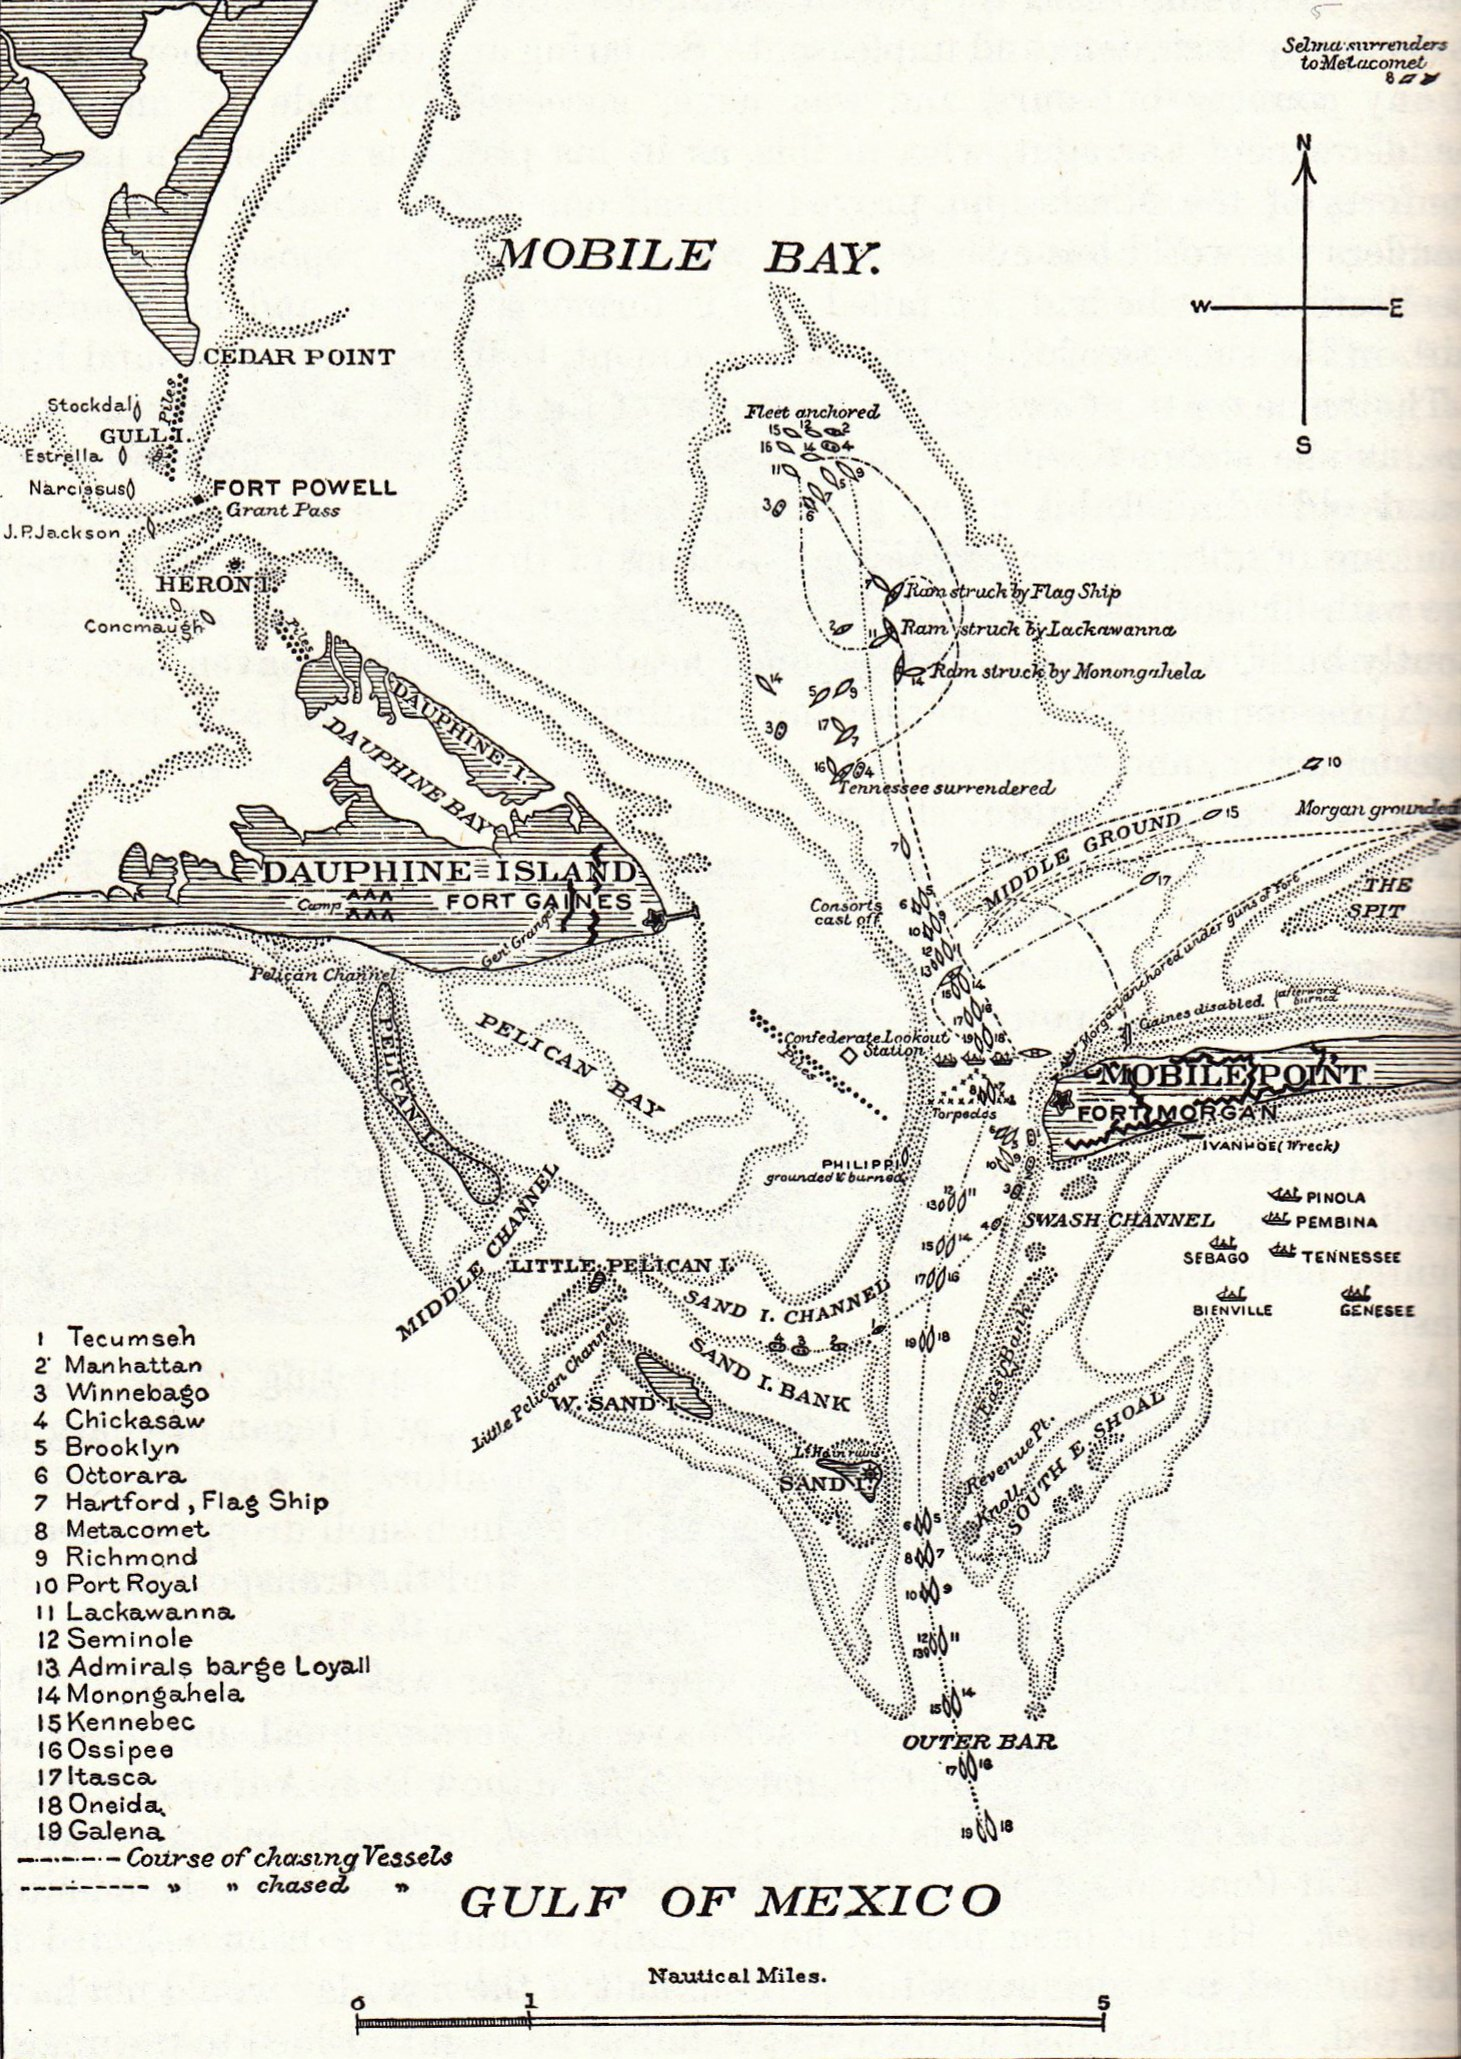 Uss lackawanna vs css tennessee at the battle of mobile bay august 6 -  Tennessee From The Map Of The Battle Of Mobile Bay